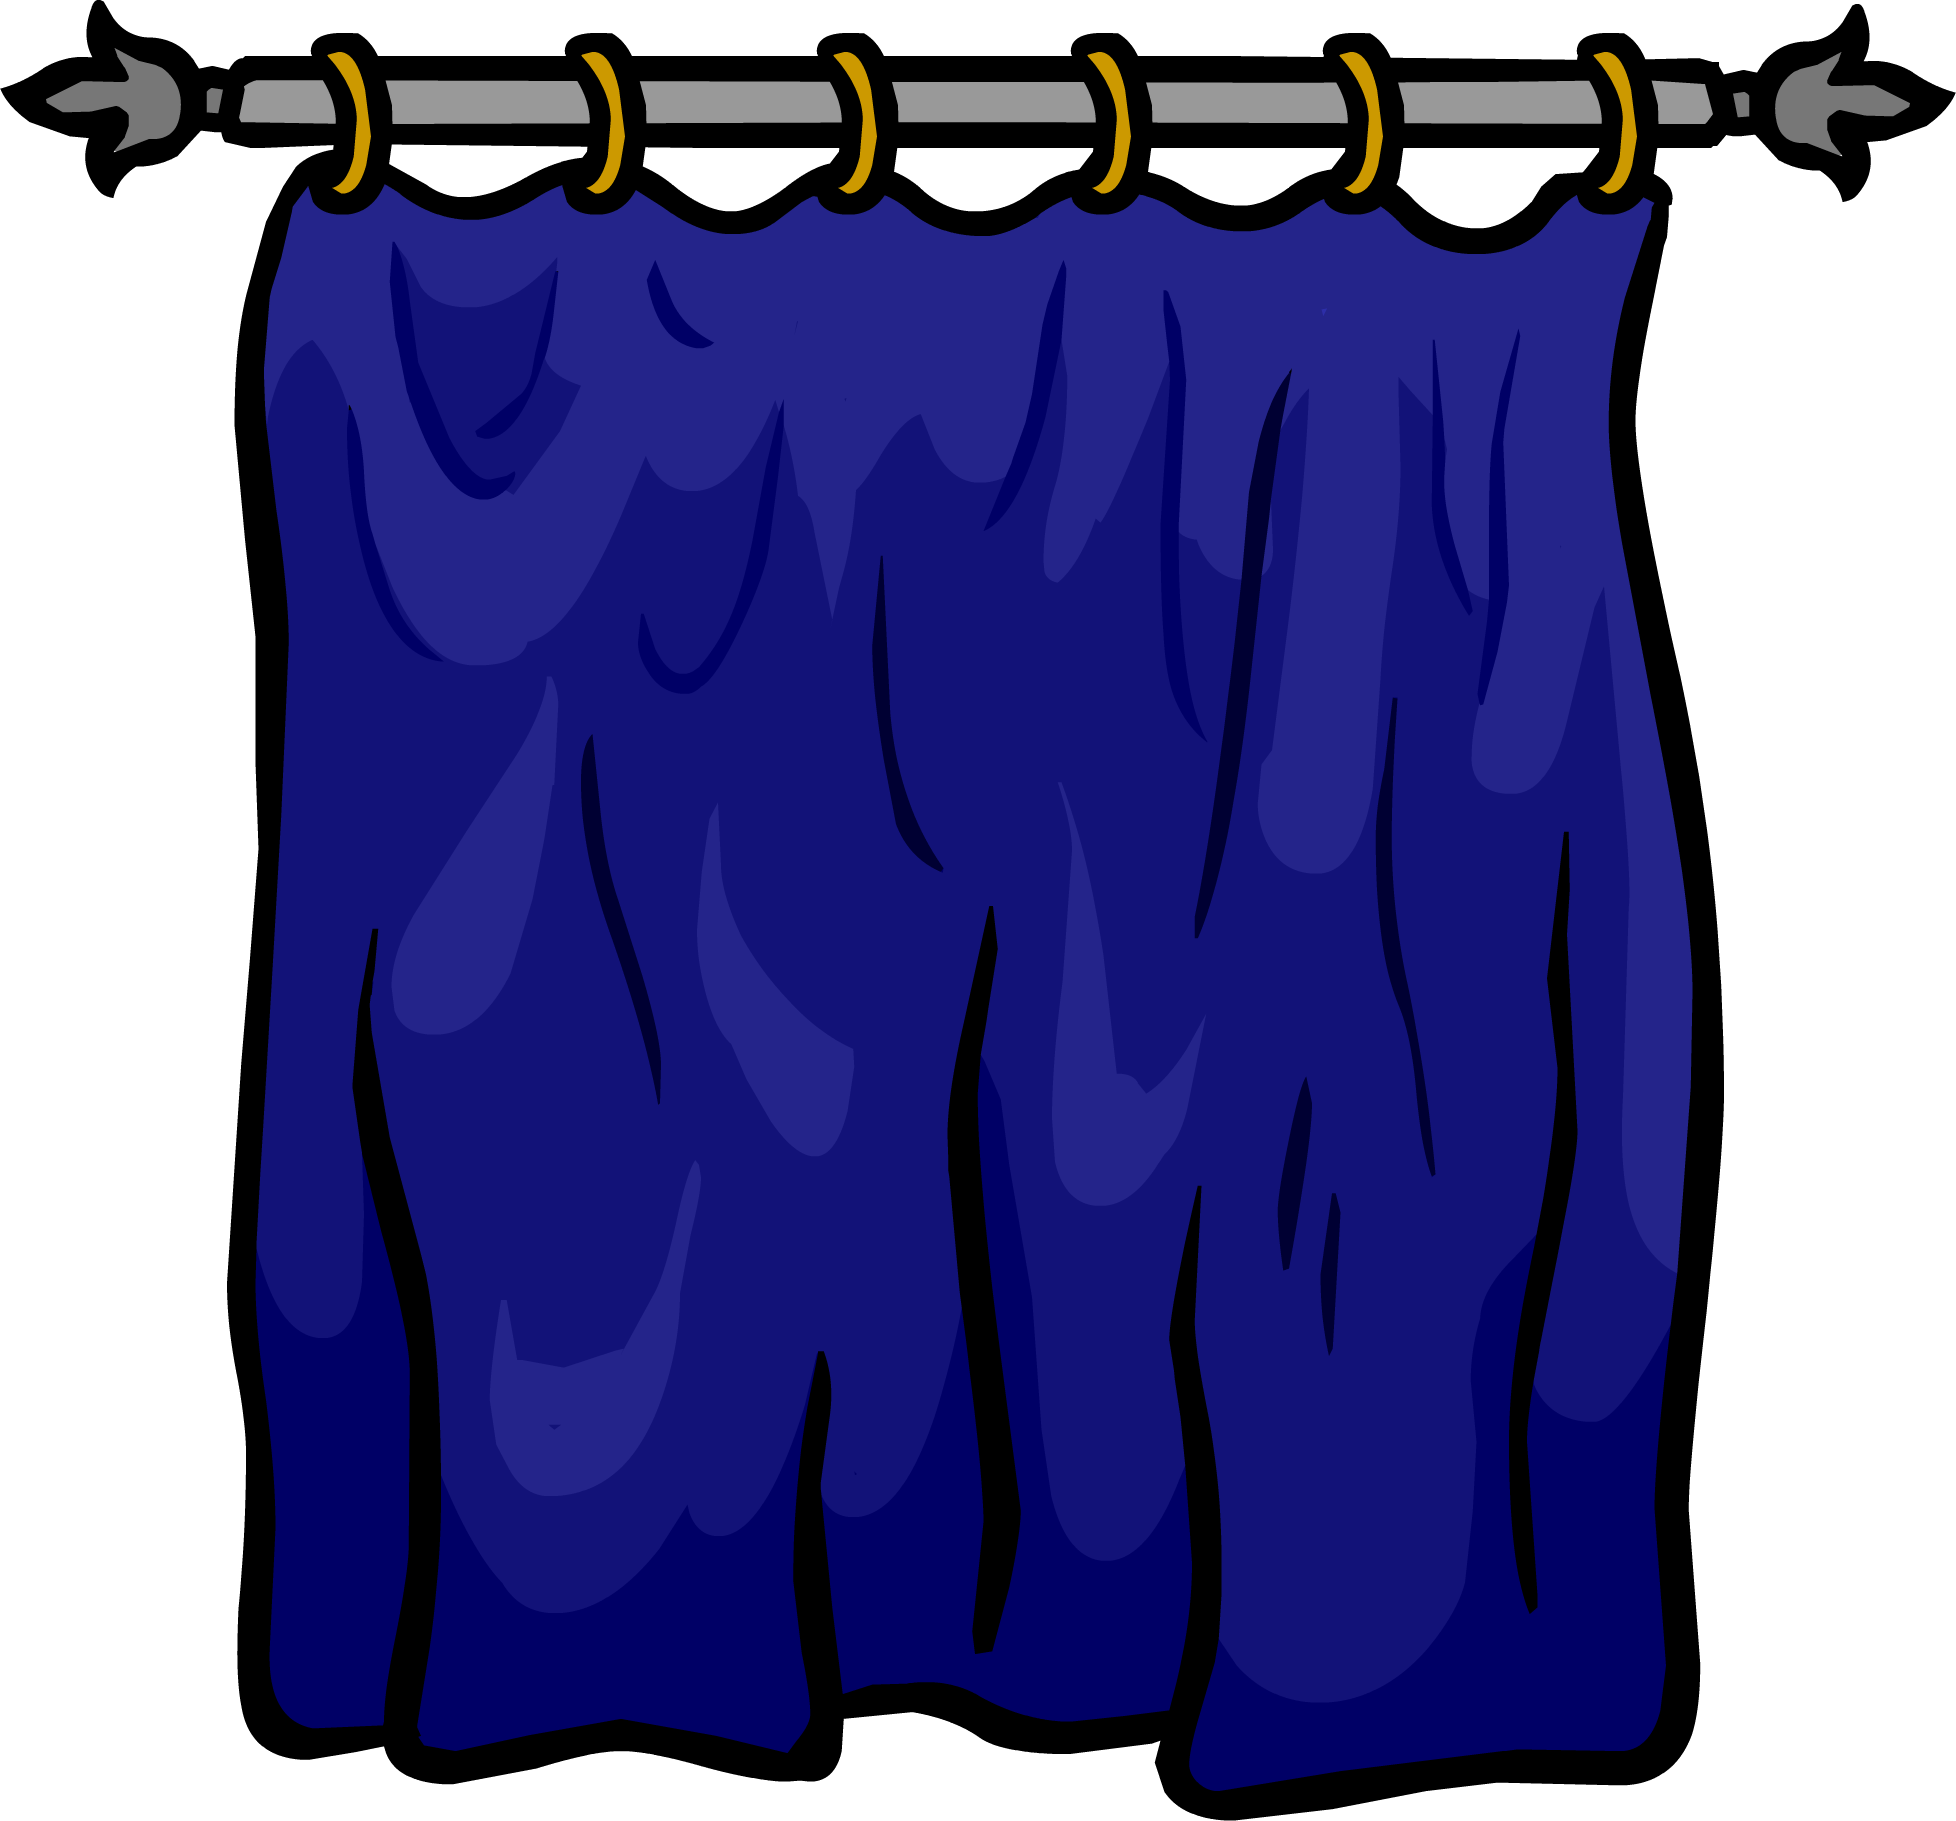 Blue curtains png. Image curtain club penguin